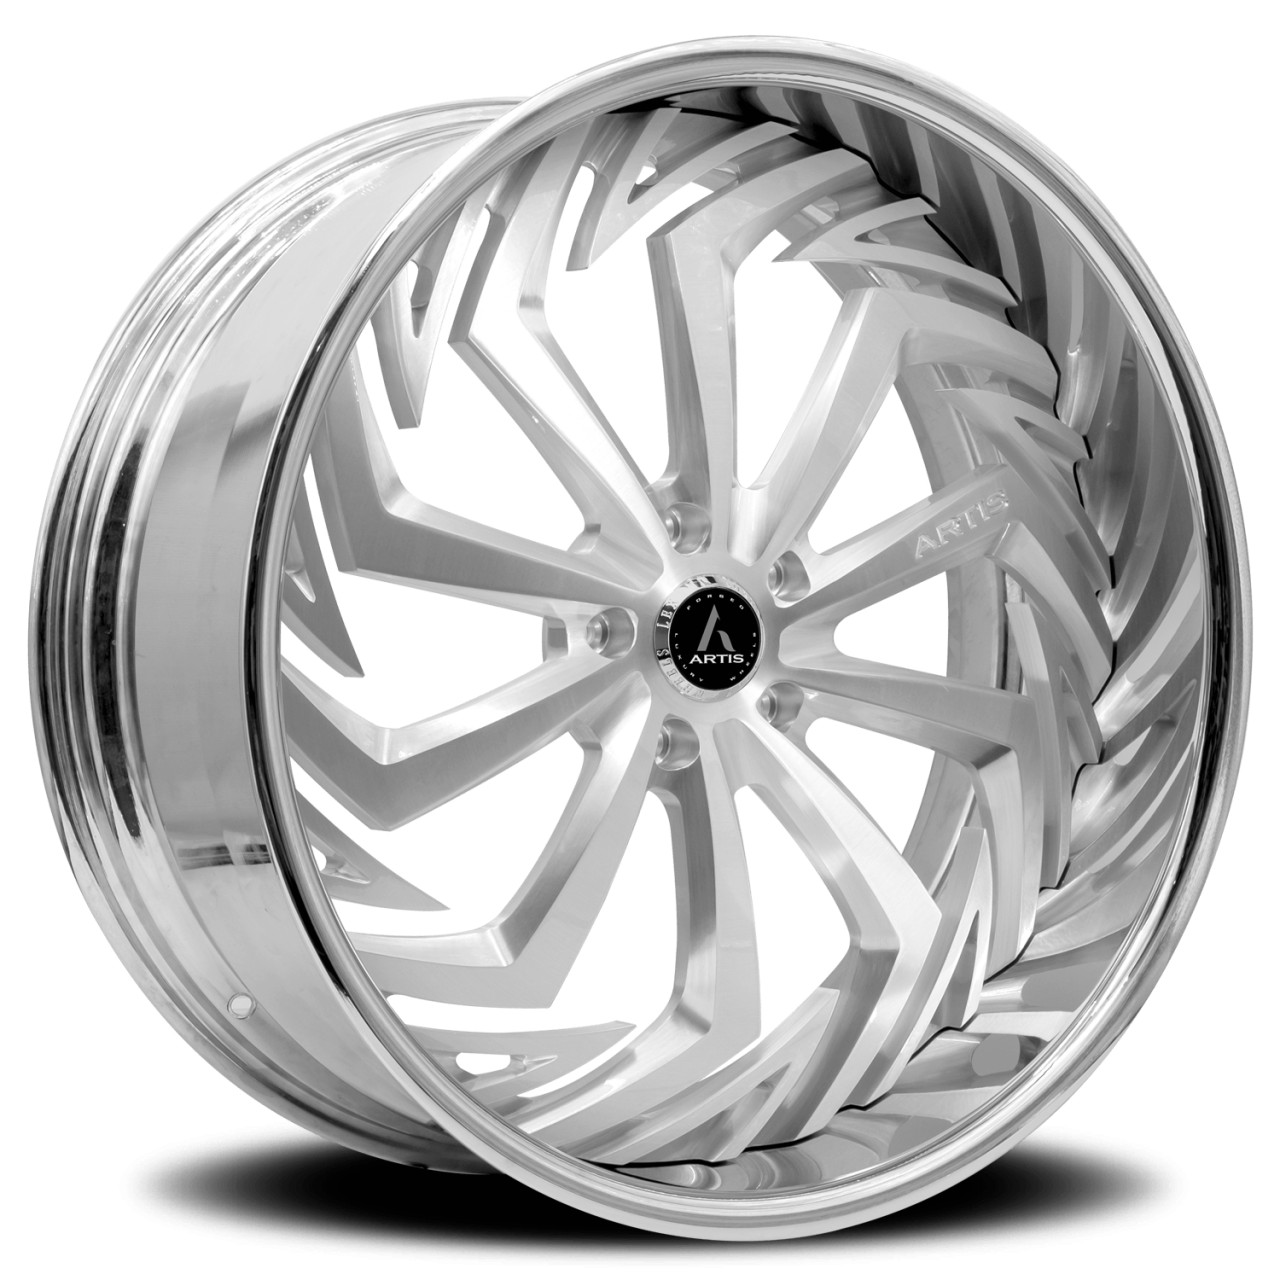 Artis Forged Royal wheel with Brushed finish